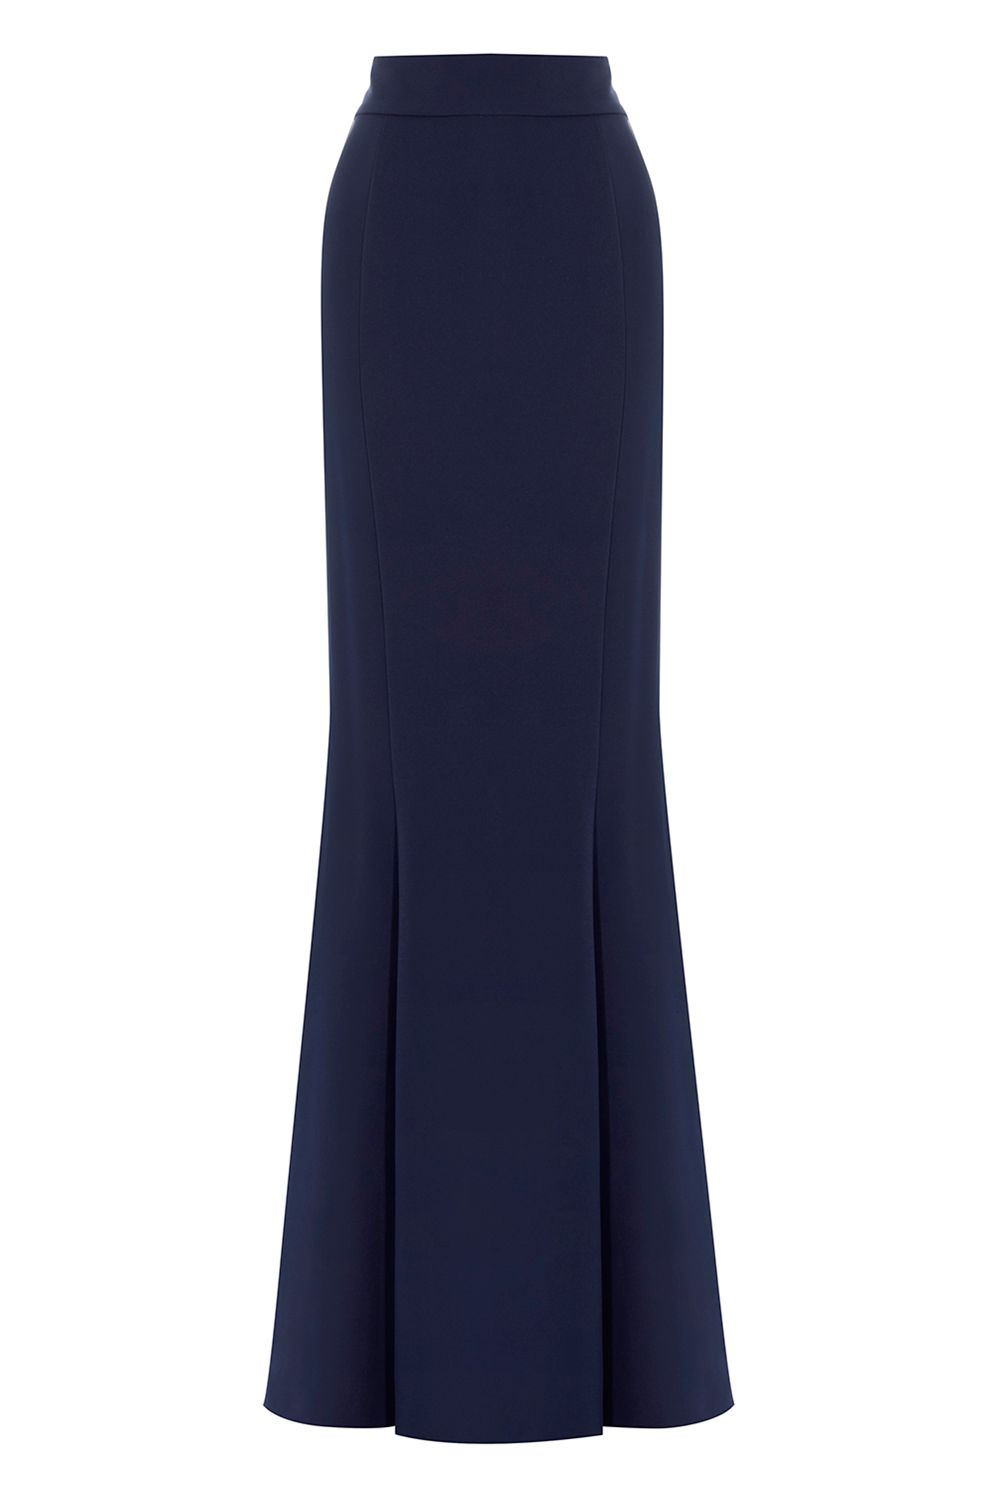 Coast Alice Bridesmaids Skirt, Blue